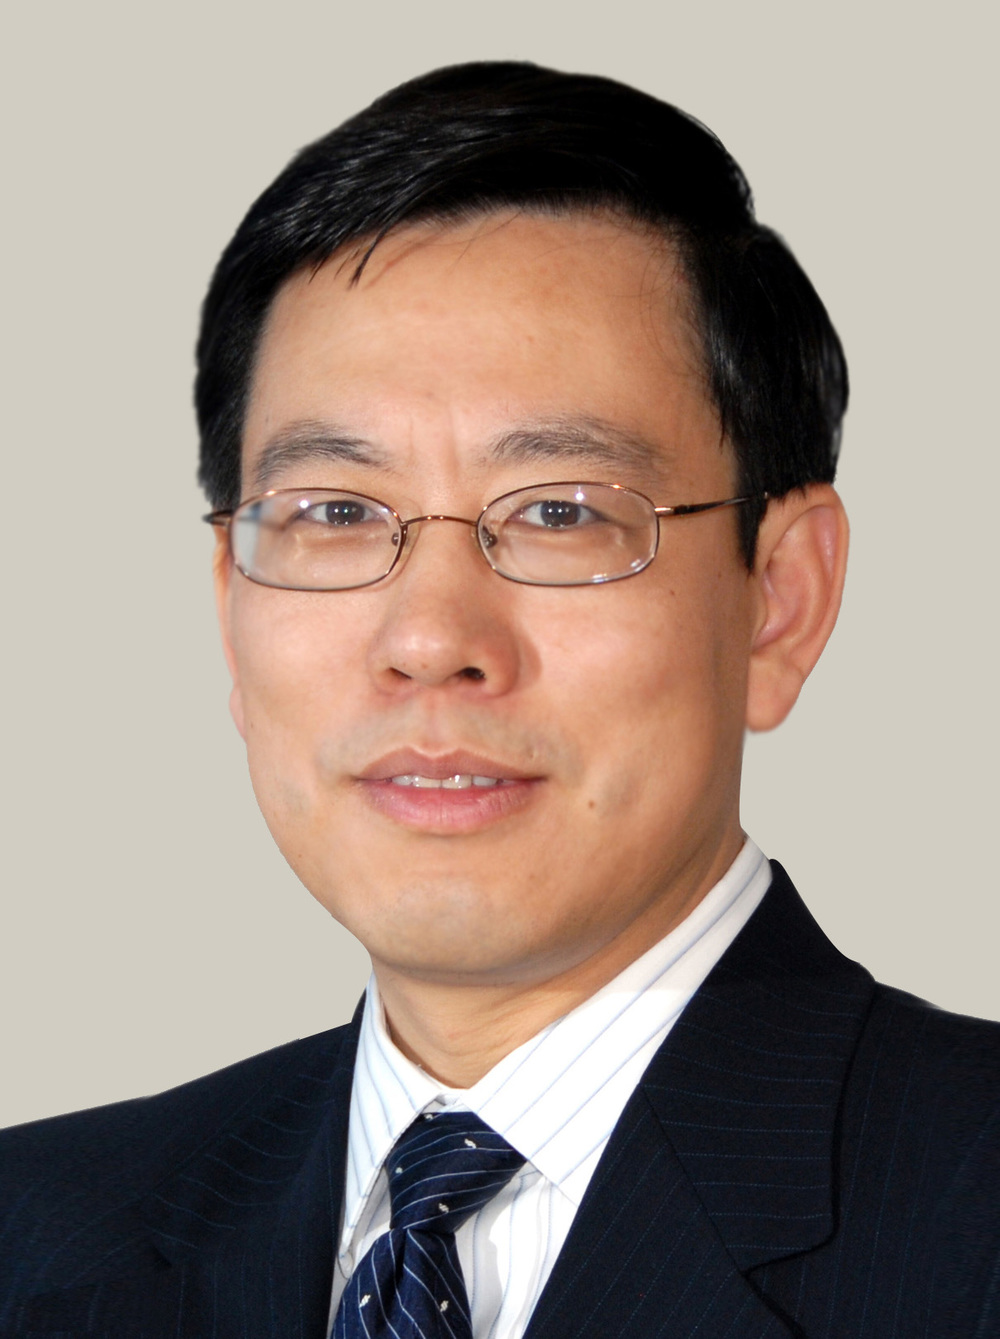 Co-CEO of WuXi AppTec